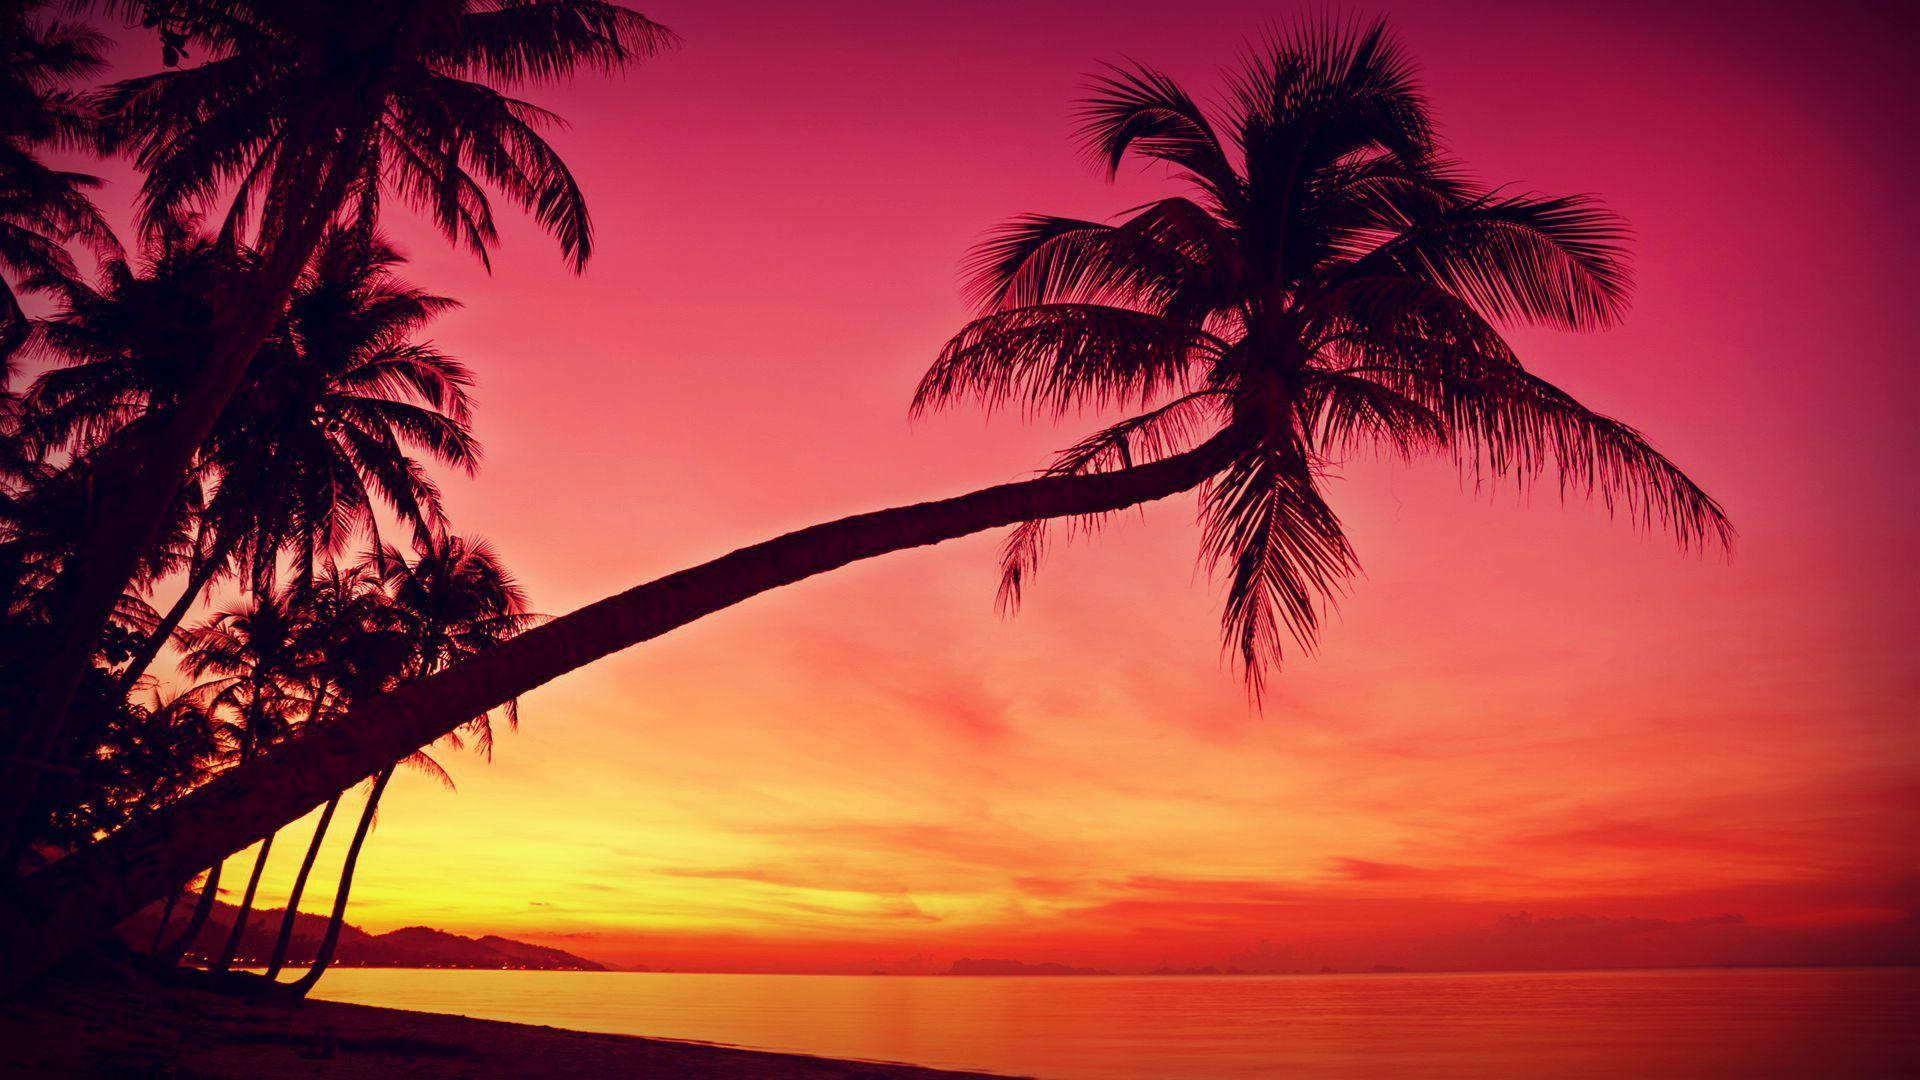 HD Tropical, Sunset, Palm Trees, Silhouette, Beach Wallpapers